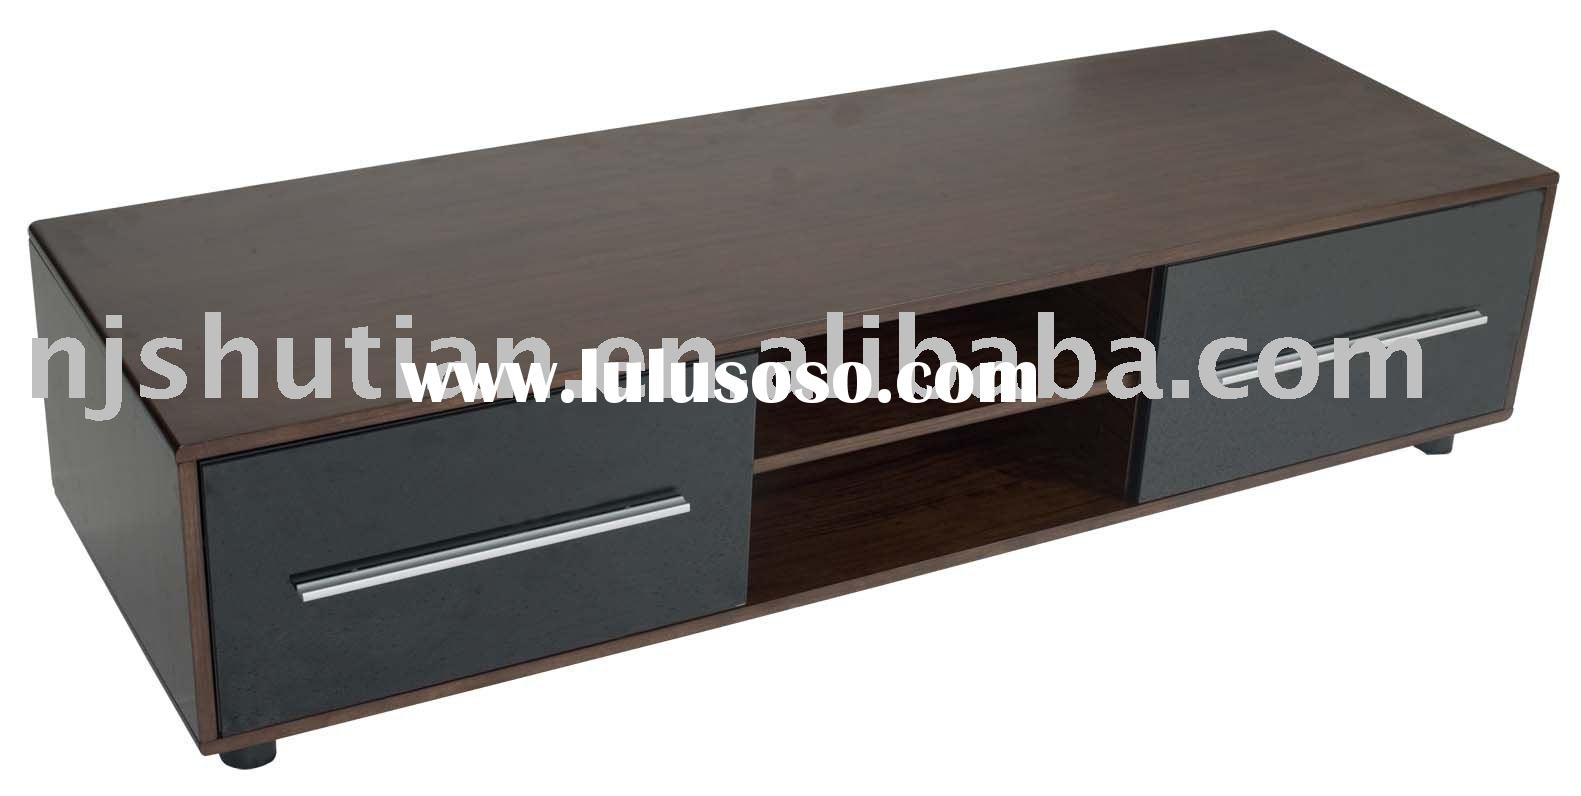 Simplicity & good quality wooden LCD TV stand